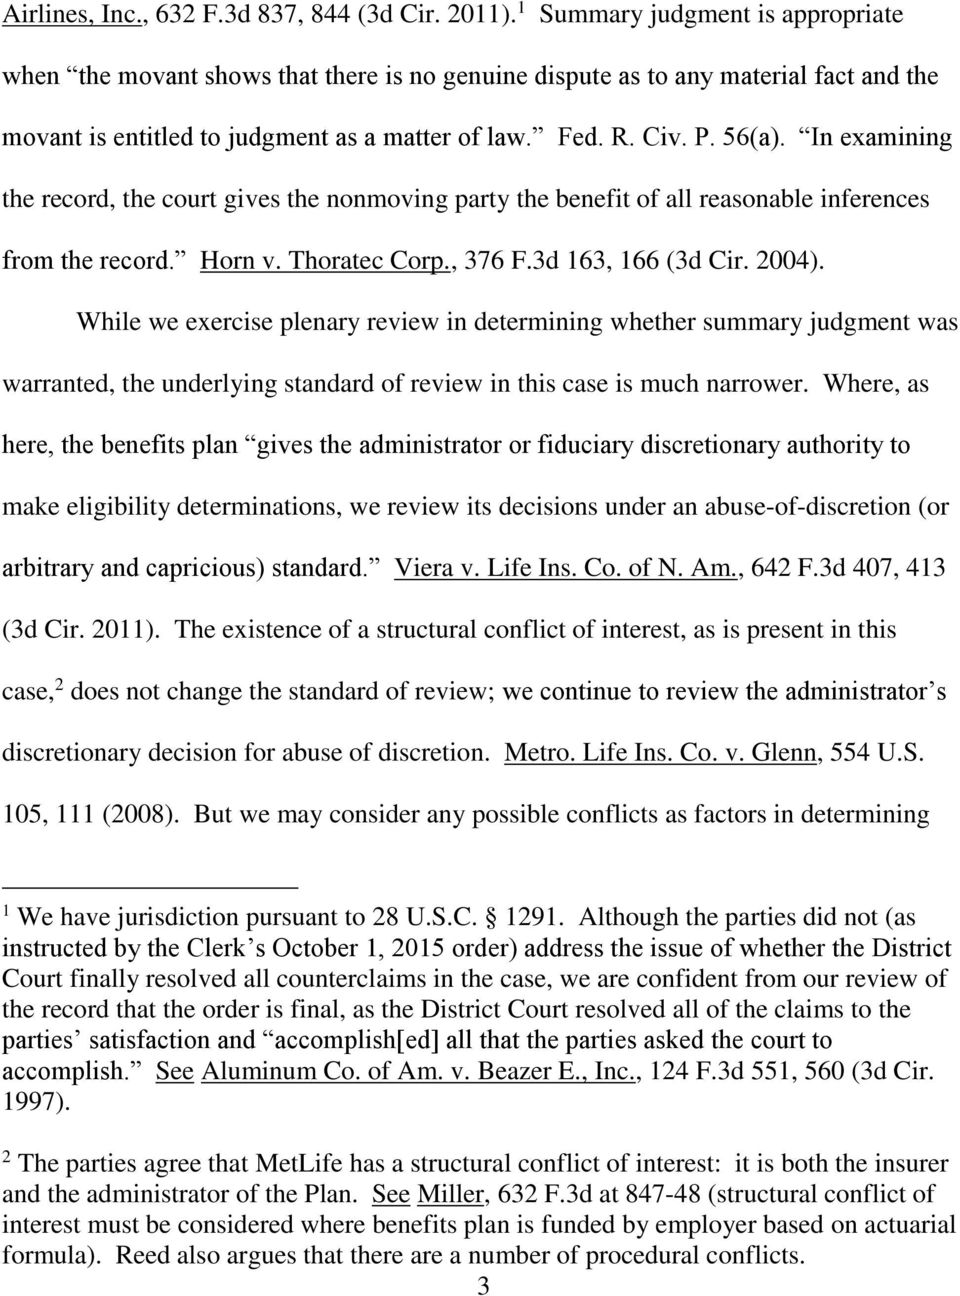 In examining the record, the court gives the nonmoving party the benefit of all reasonable inferences from the record. Horn v. Thoratec Corp., 376 F.3d 163, 166 (3d Cir. 2004).